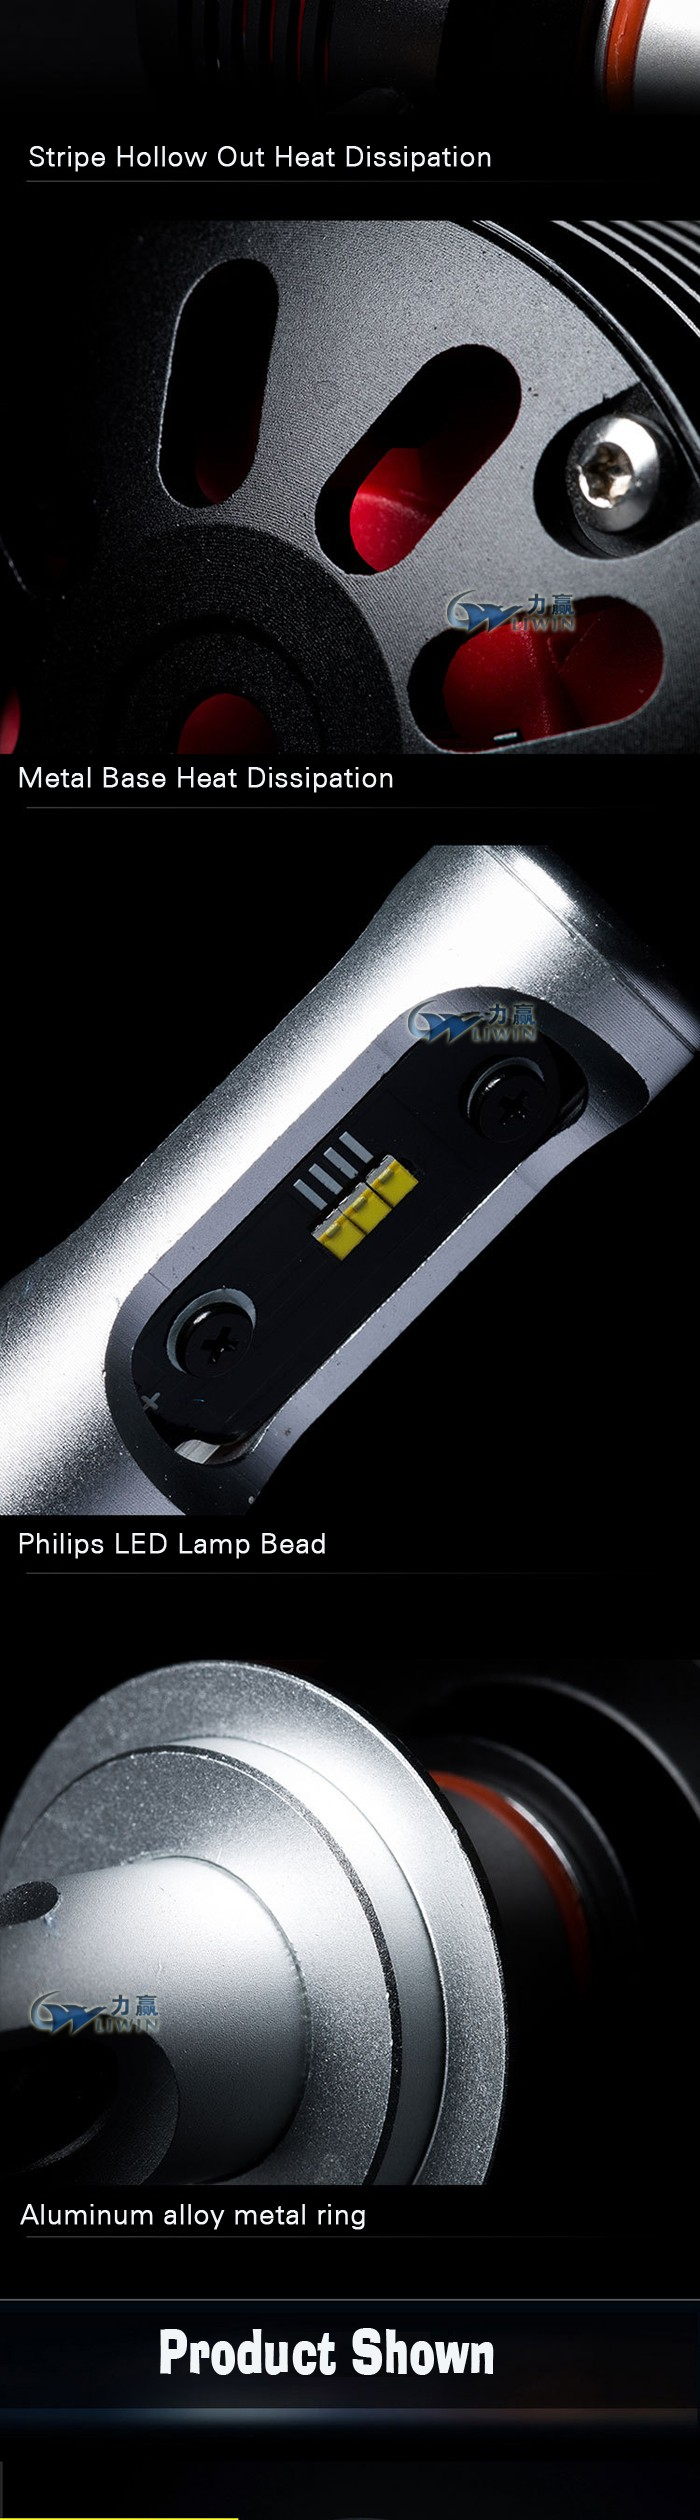 led headlight-3.jpg